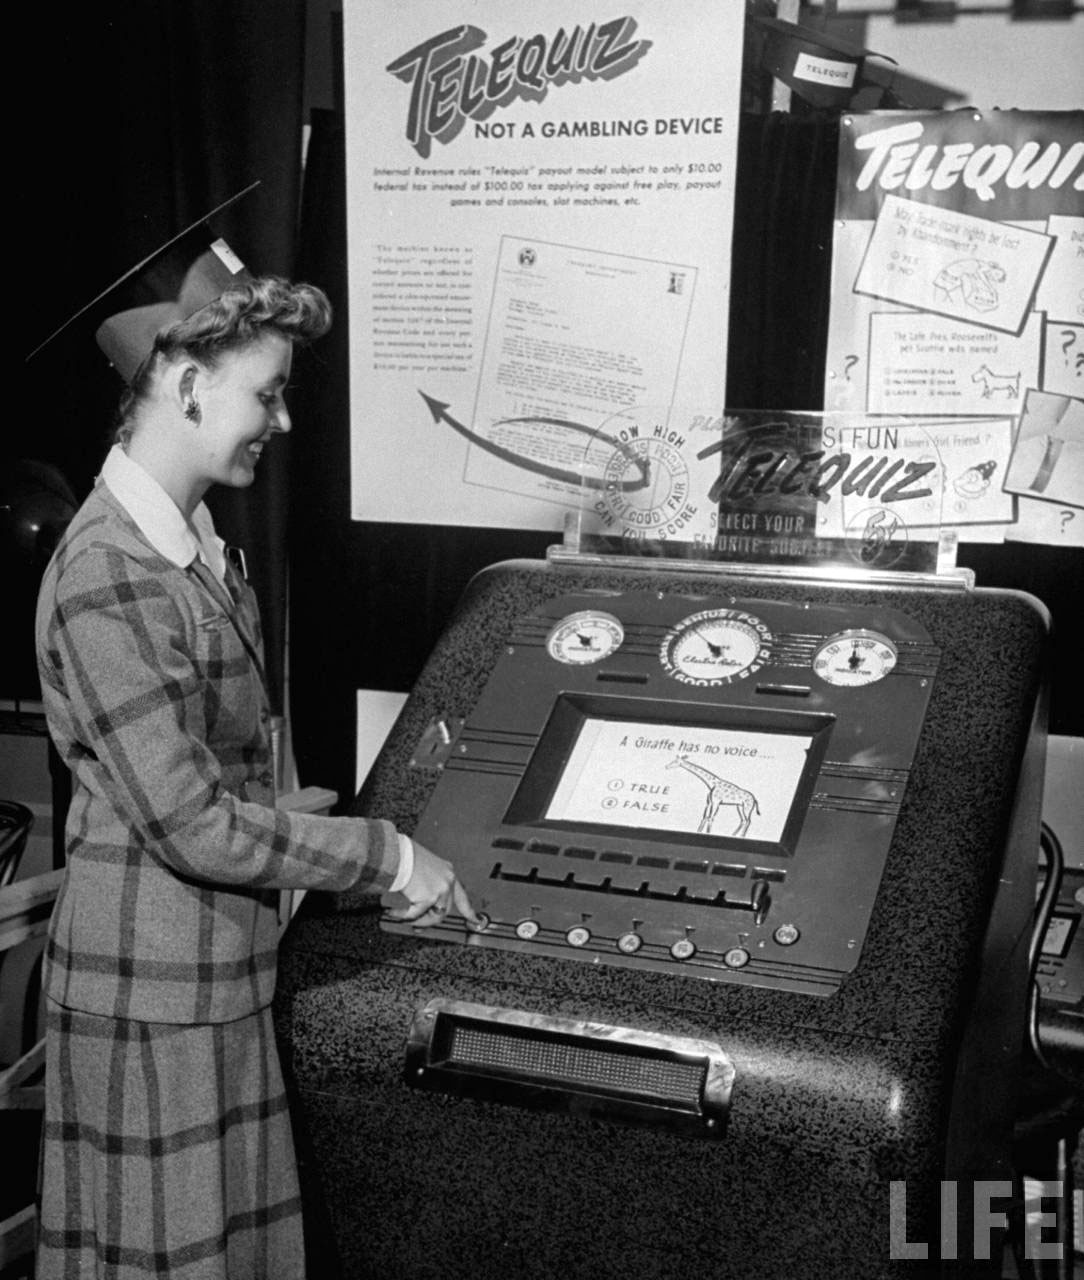 Photograph of a vintage coin-operated quiz machine, 1947 (Life magazine, Wallace Kirkland)